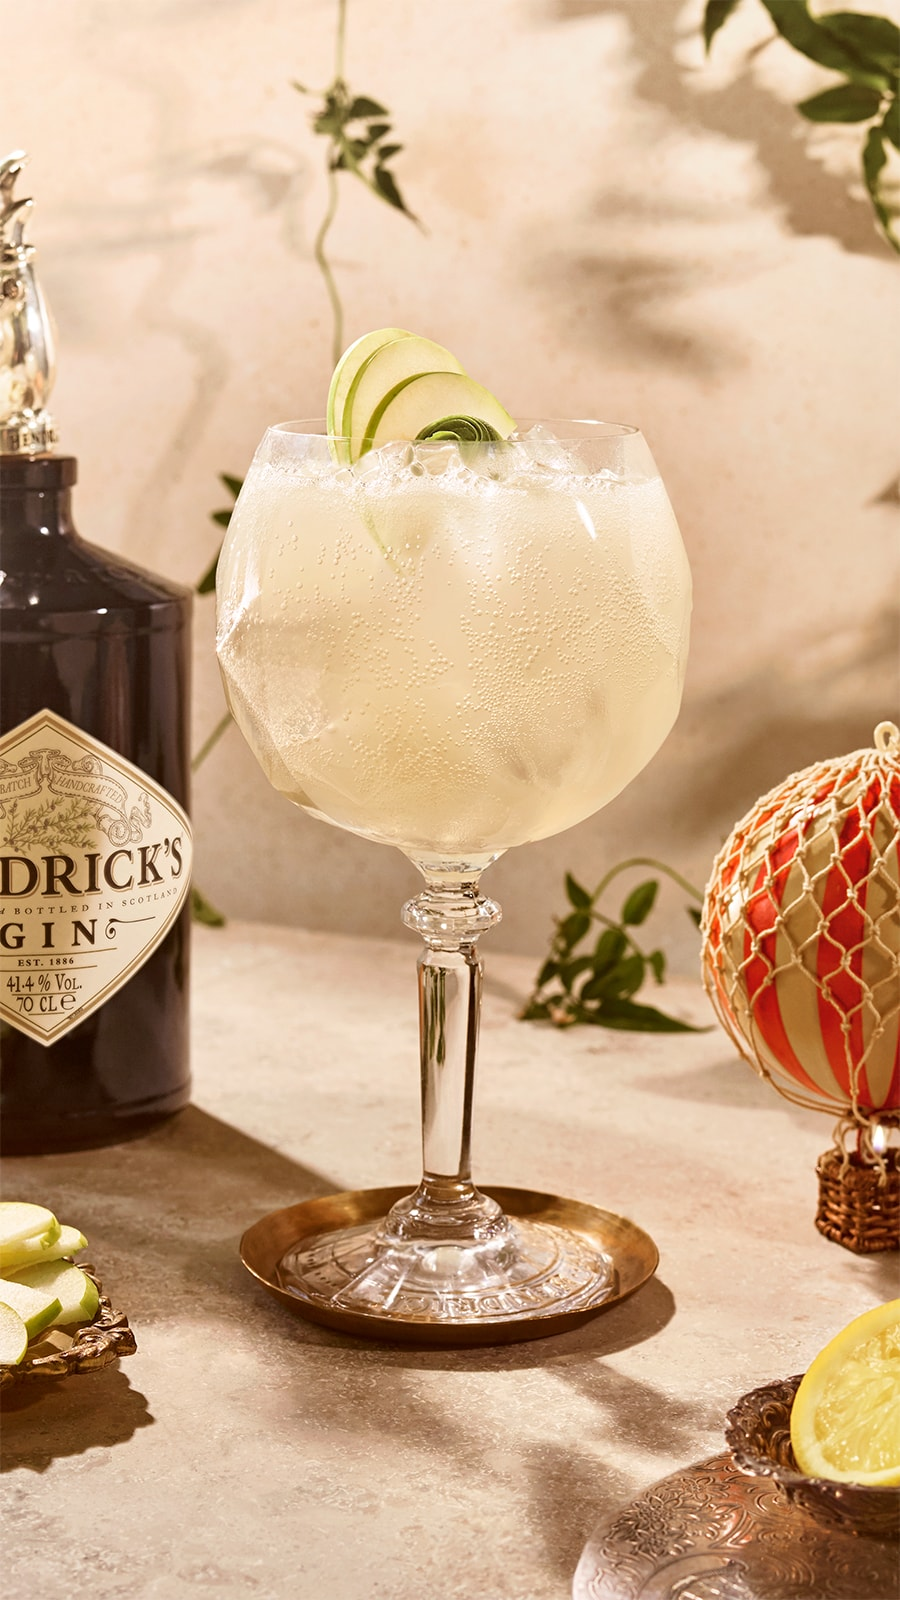 Orchard CollinsCocktail Recipe